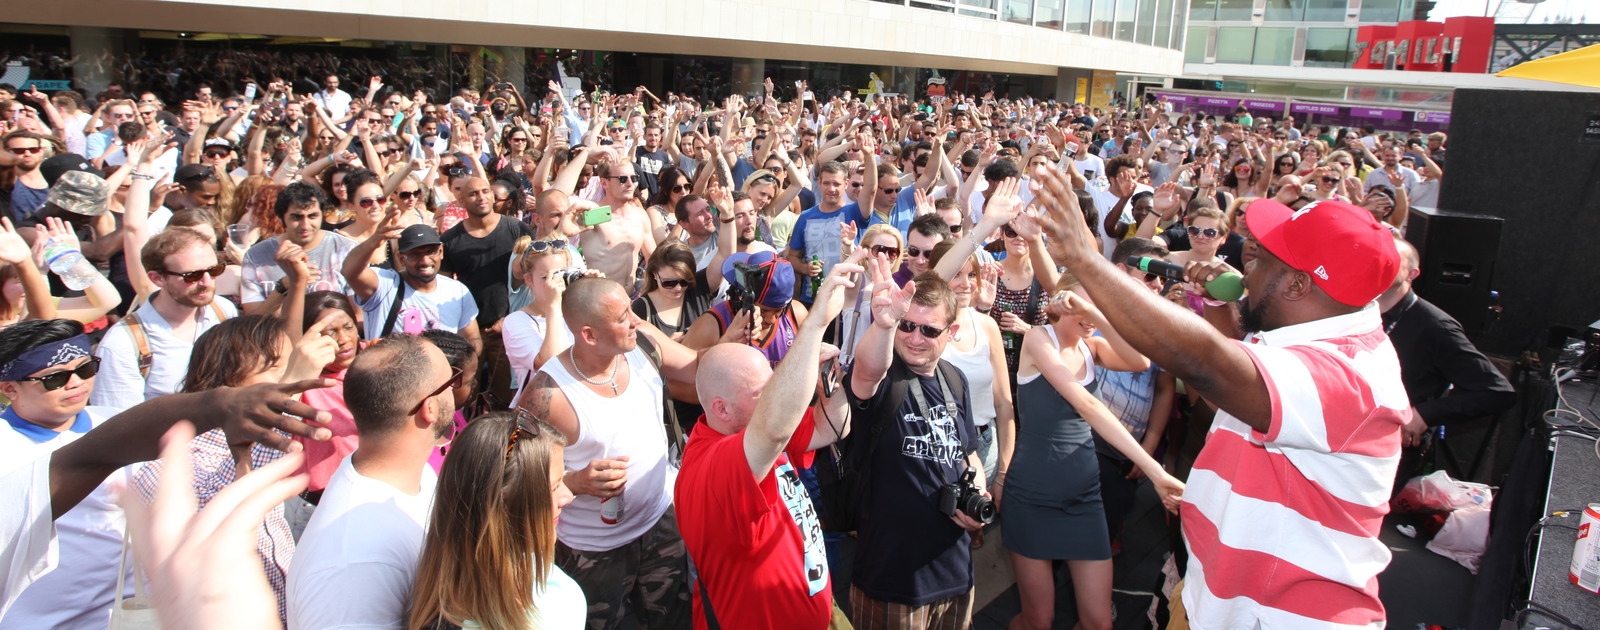 Hip Hop terrace party during Urban Weekend at the Southbank Centre